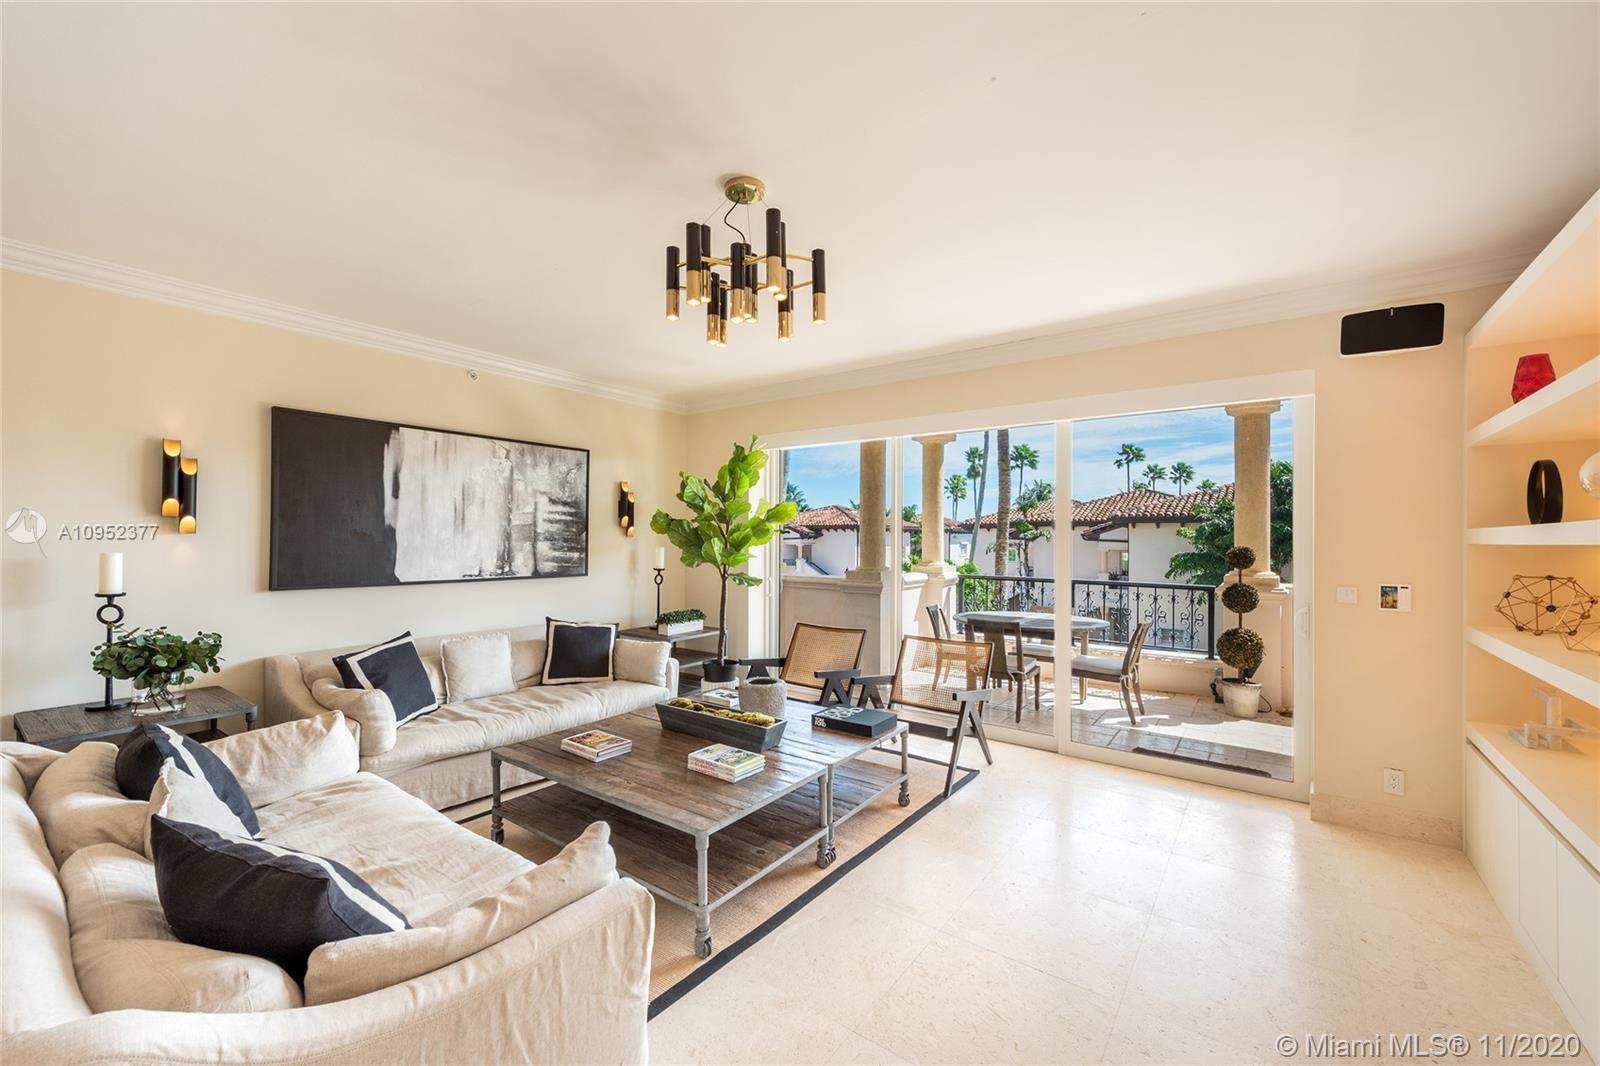 This beautiful contemporary 3BR/3BA Seaside Village unit has partial ocean & bay views and is perfectly located just a minute to the beach club, tennis, spa and more.  Offered fully turnkey, the unit can be rented for a minimum of one month (due to COVID).  Features coral stone floors, an open flowing living & dining room layout & direct access to a large terrace w/seating area & al fresco dining table to relax and entertain. The kitchen sports top-of the line appliances & serving counter to the dining area. The spacious principal suite offers direct terrace access, walk-in closet w/built-ins, crown molding & a beautiful principal bathroom with double sinks, glass/marble shower & private water closet. The other two bedrooms each w/en-suite bathrooms. Includes washer & dryer in the unit.